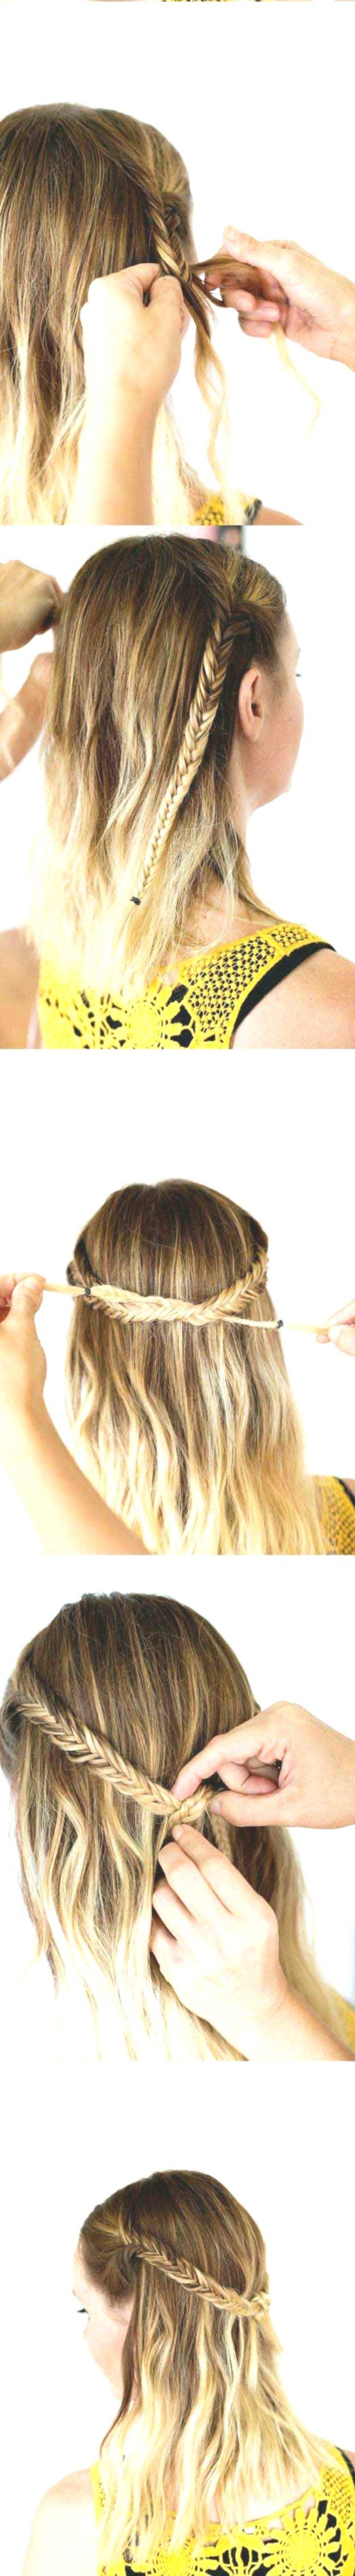 Hairstyles for school Best hairstyles for summer - Bohemian Festival Knot ...